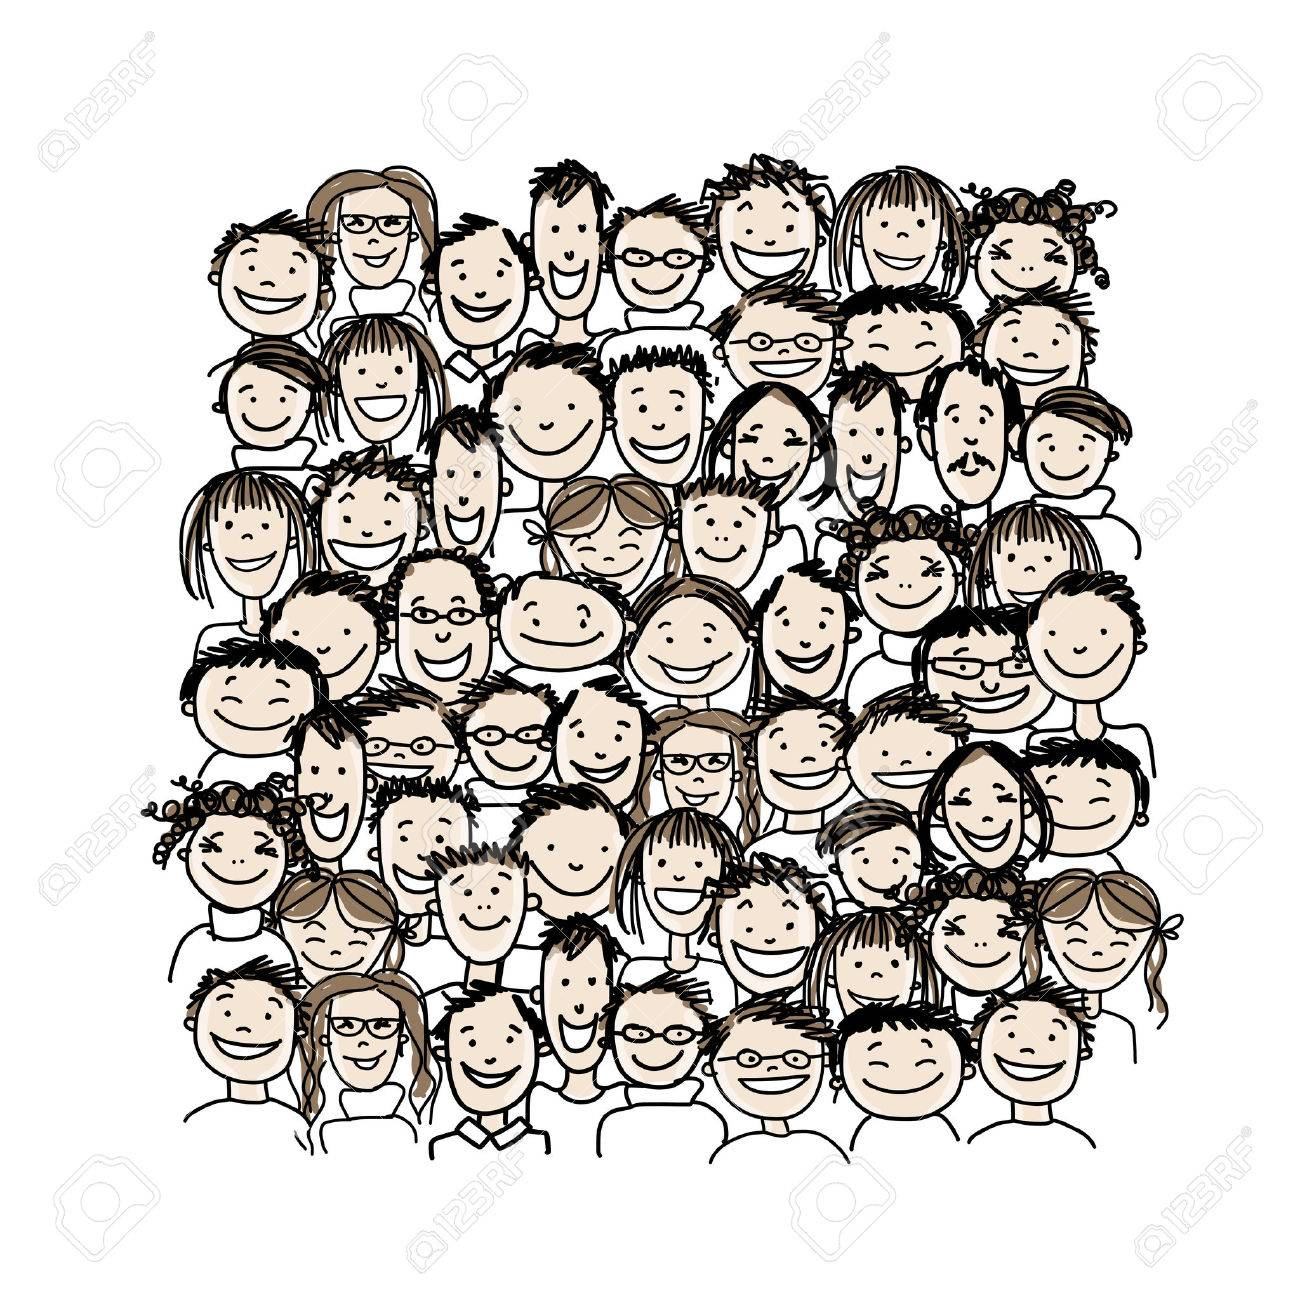 Group of people, sketch for your design Stock Vector - 37038361